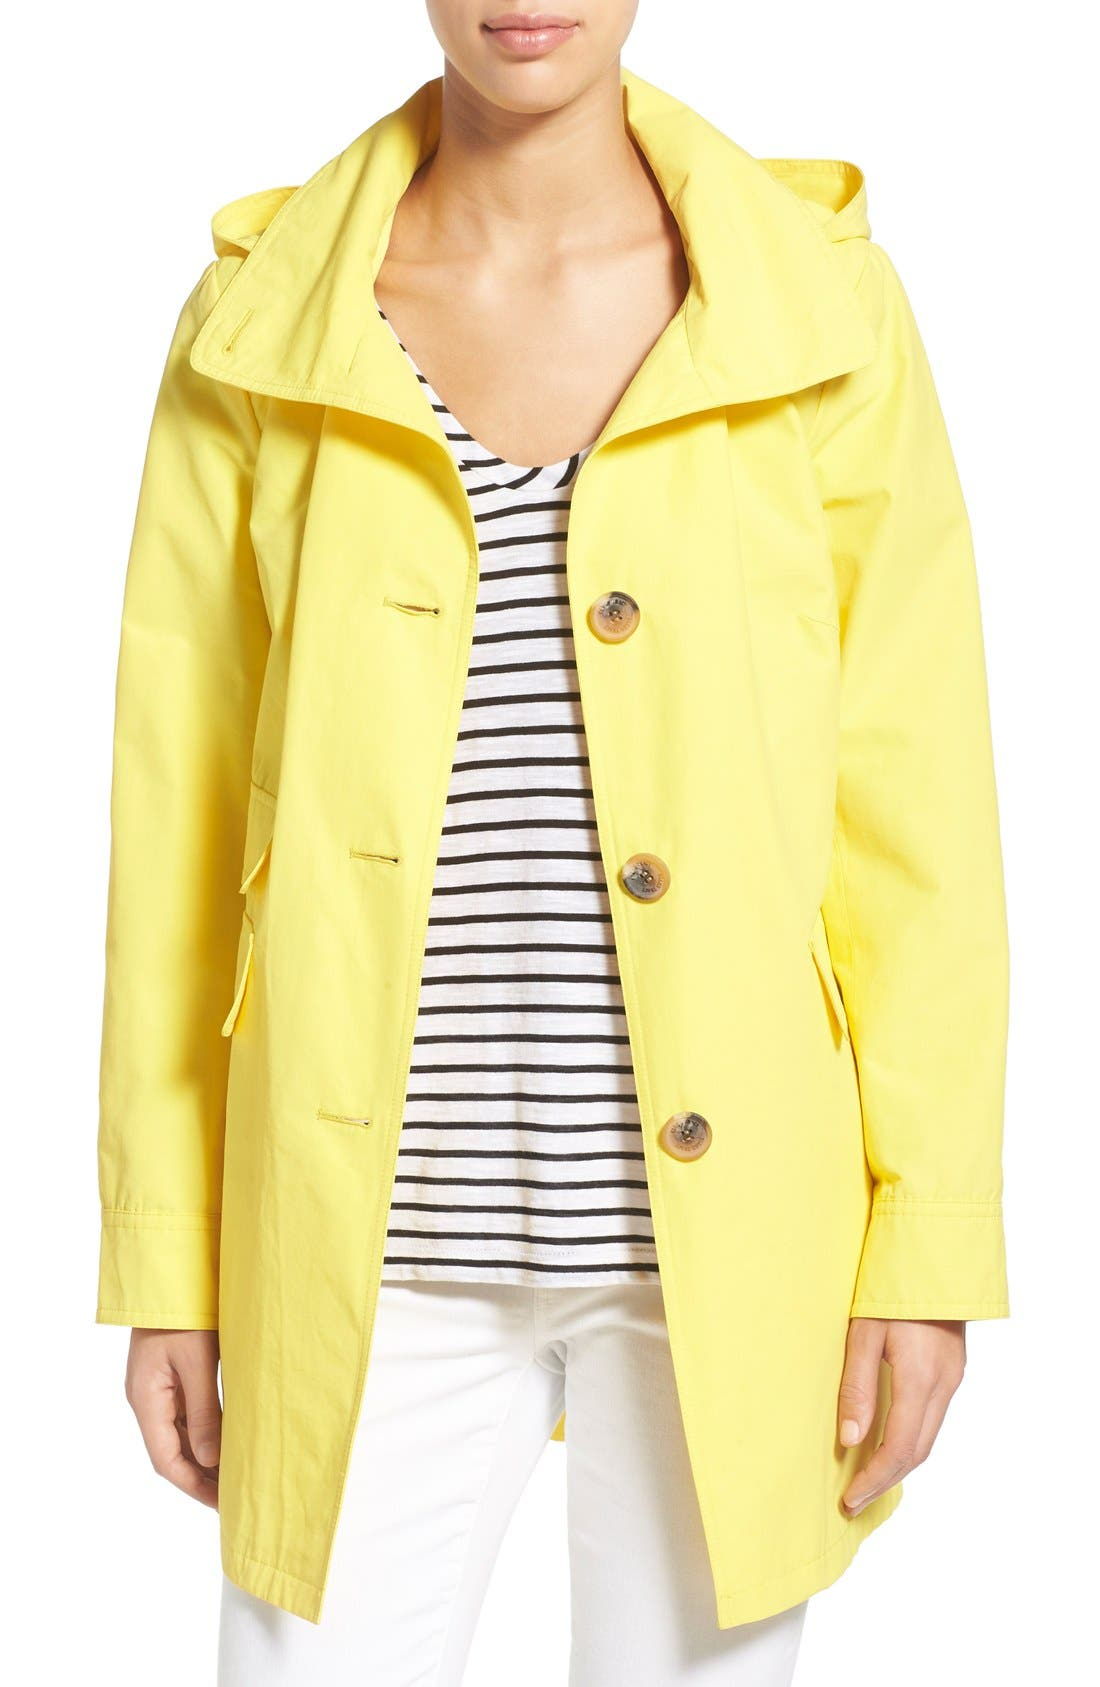 Ellen Tracy A-Line Sailcloth Coat with Detachable Hood